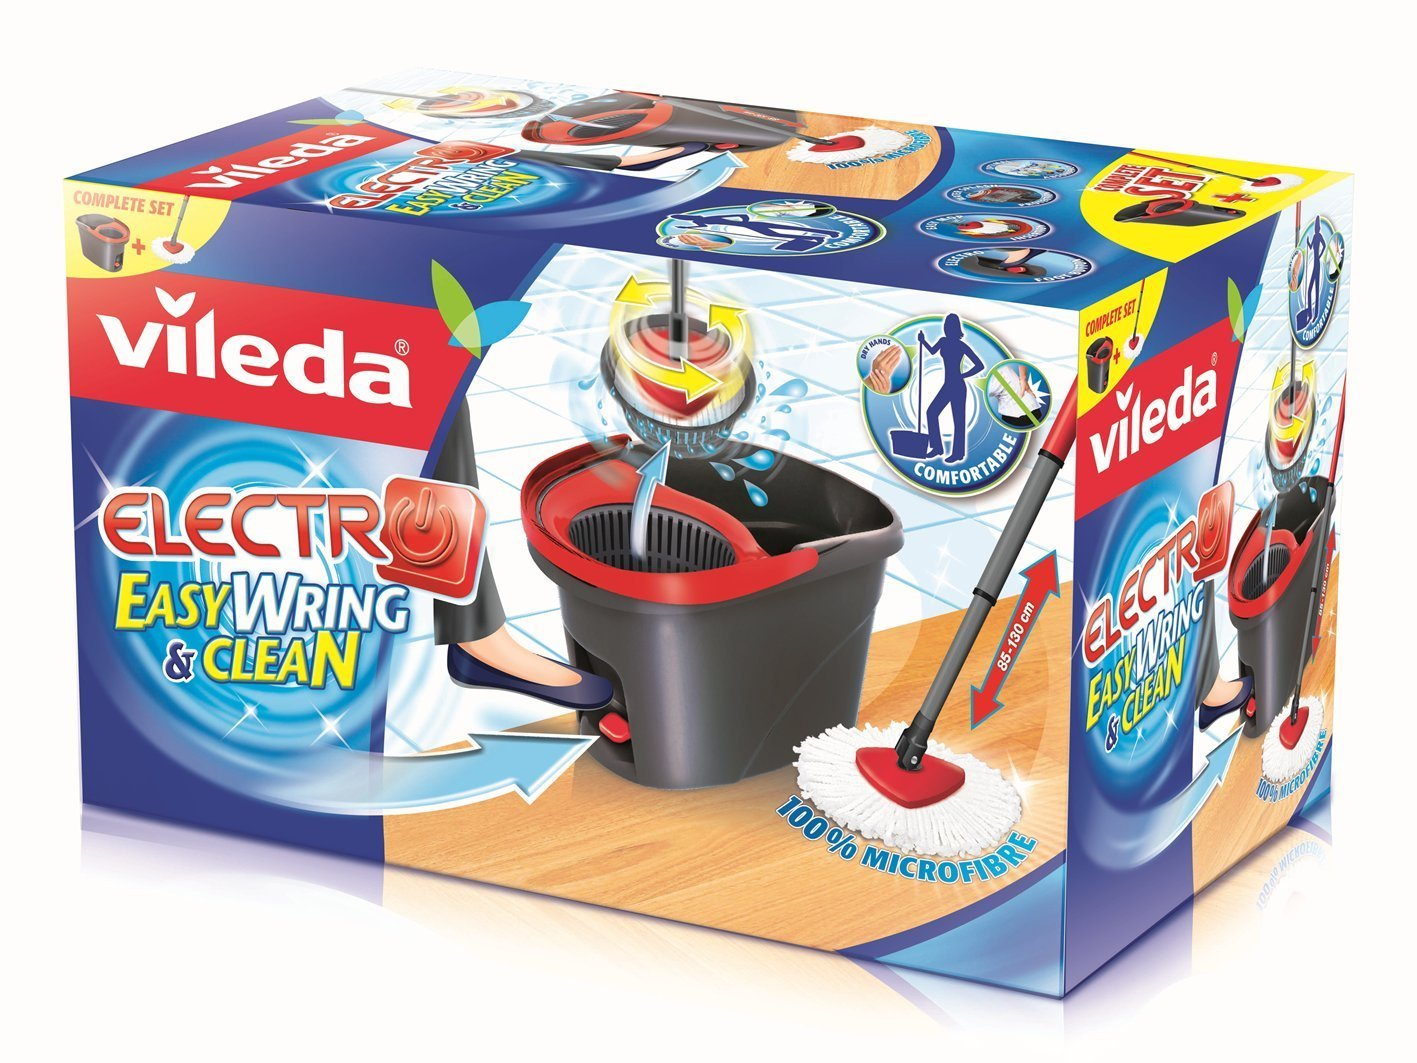 vileda Easy Wring & Clean Electro Komplett-Set Bodenwischer: Amazon.com: Grocery & Gourmet Food